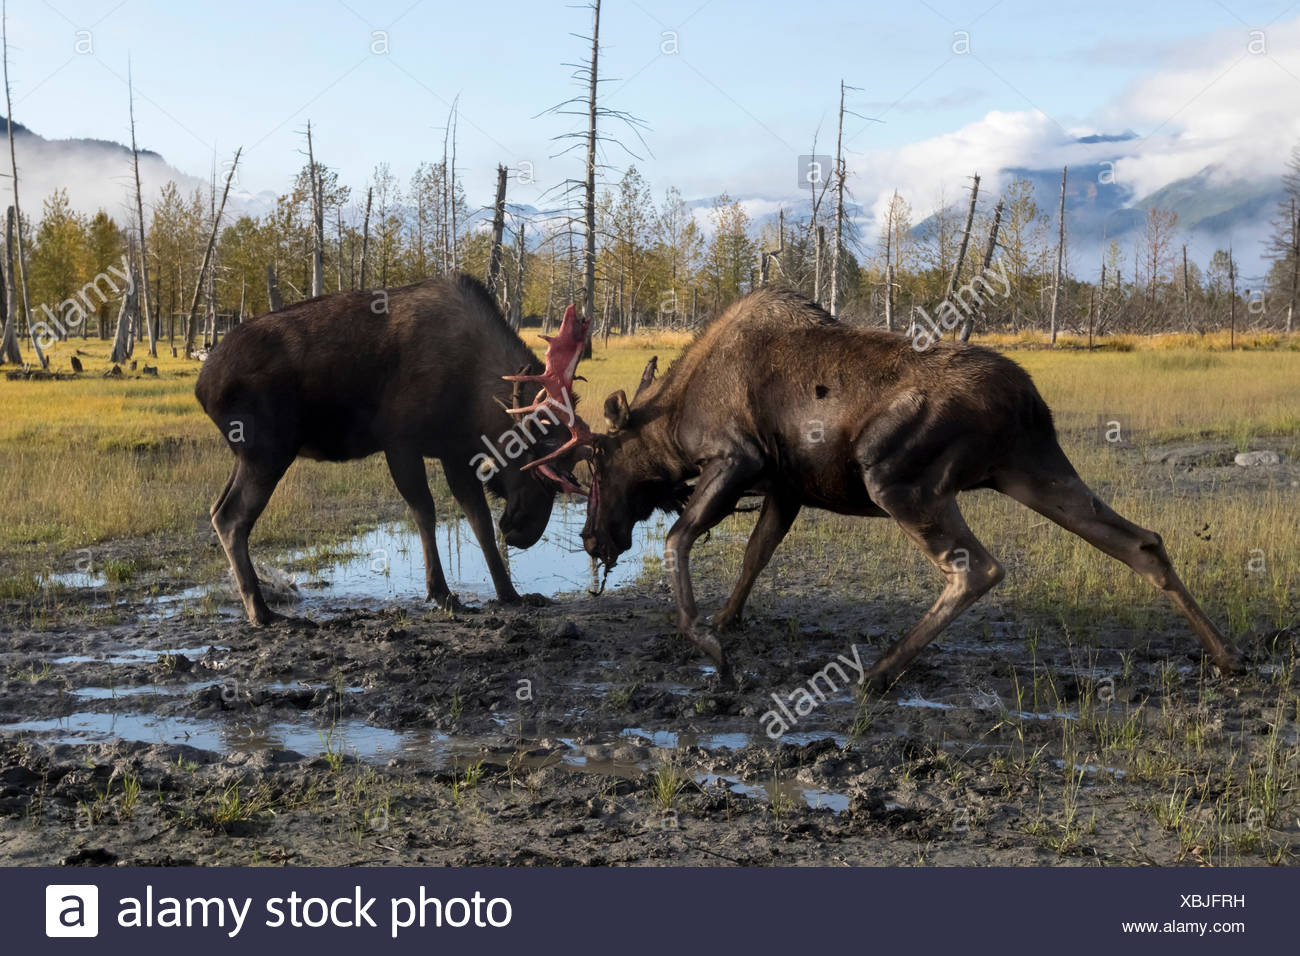 Bull moose (alces alces) just coming out of shedding its velvet and antlers look a little red, captive at Alaska Wildlife Conservation Centre - Stock Image